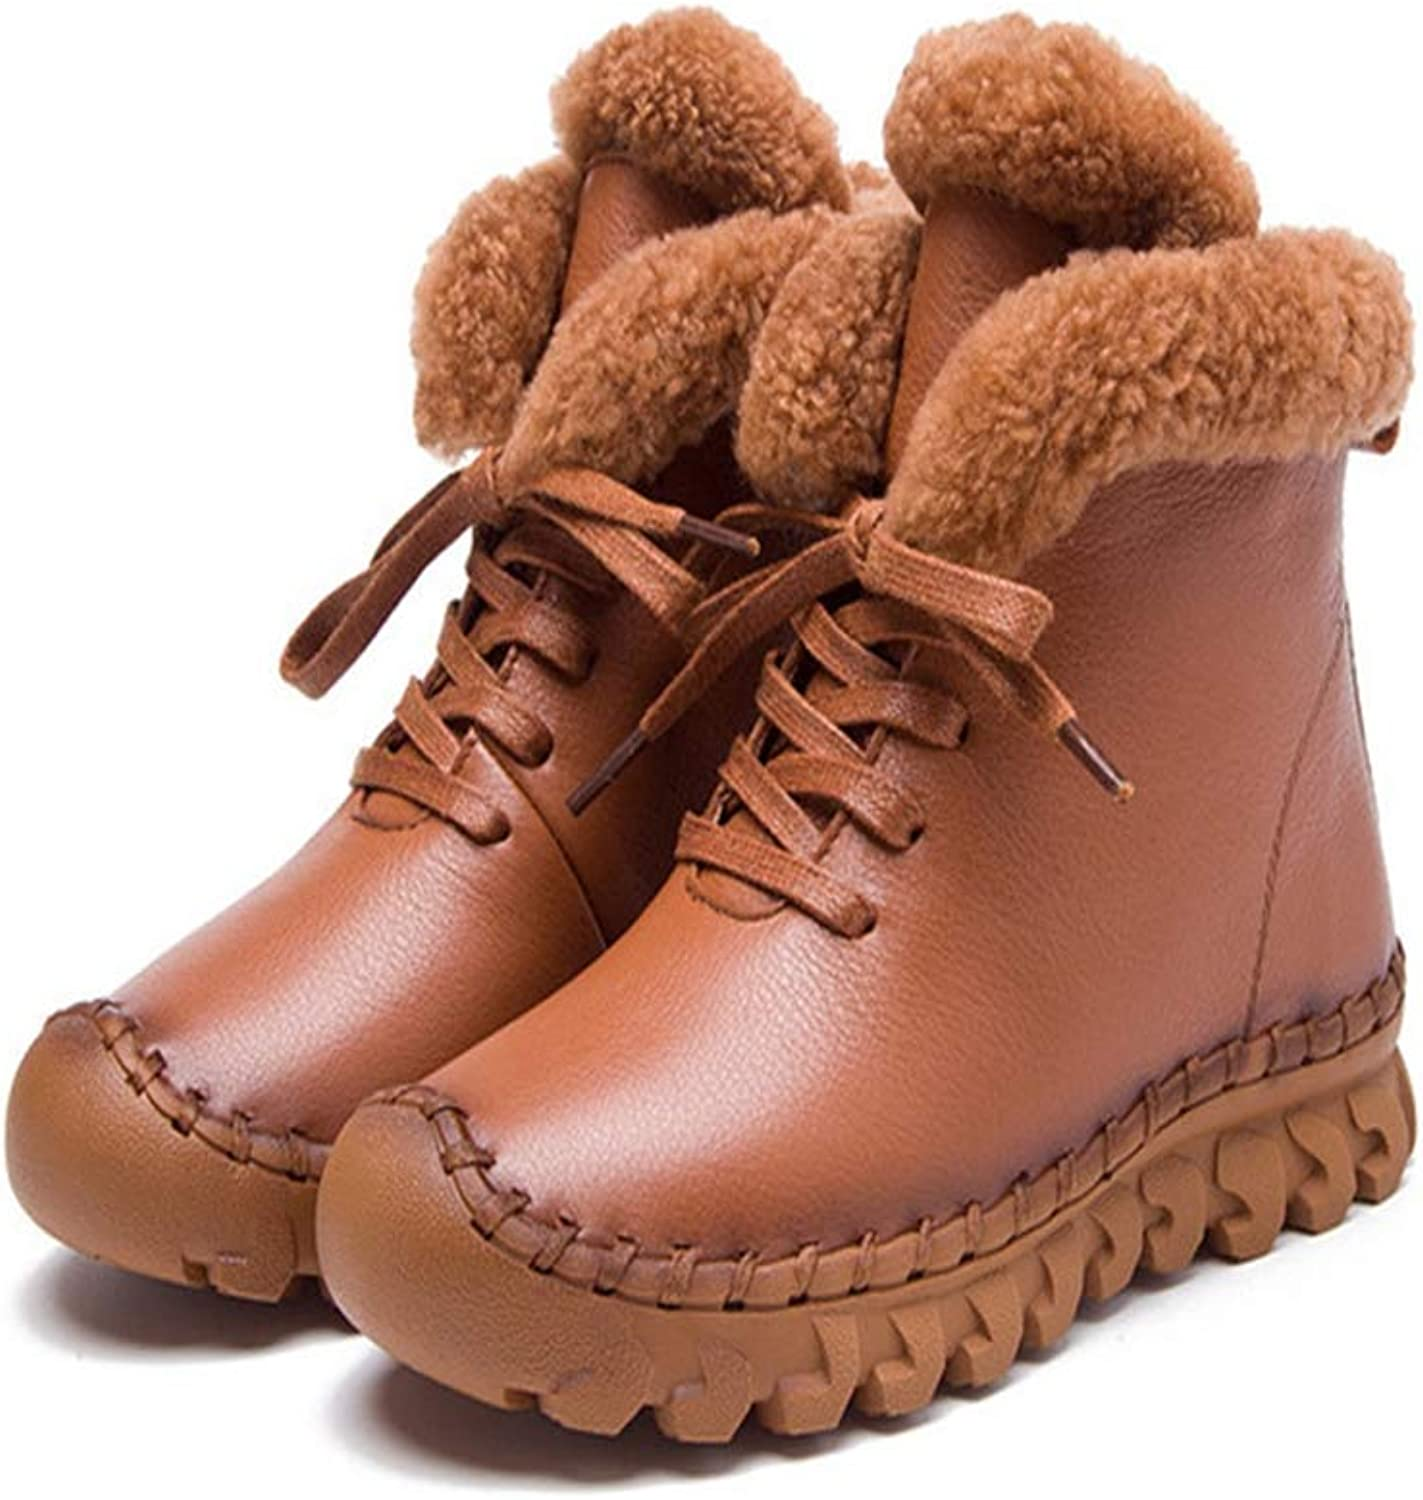 Hoxekle Women Winter Snow Boots Anti-Slip Soles Lace Up Warm Lining Winter Round Toe Faux Fur Female Comfortable shoes